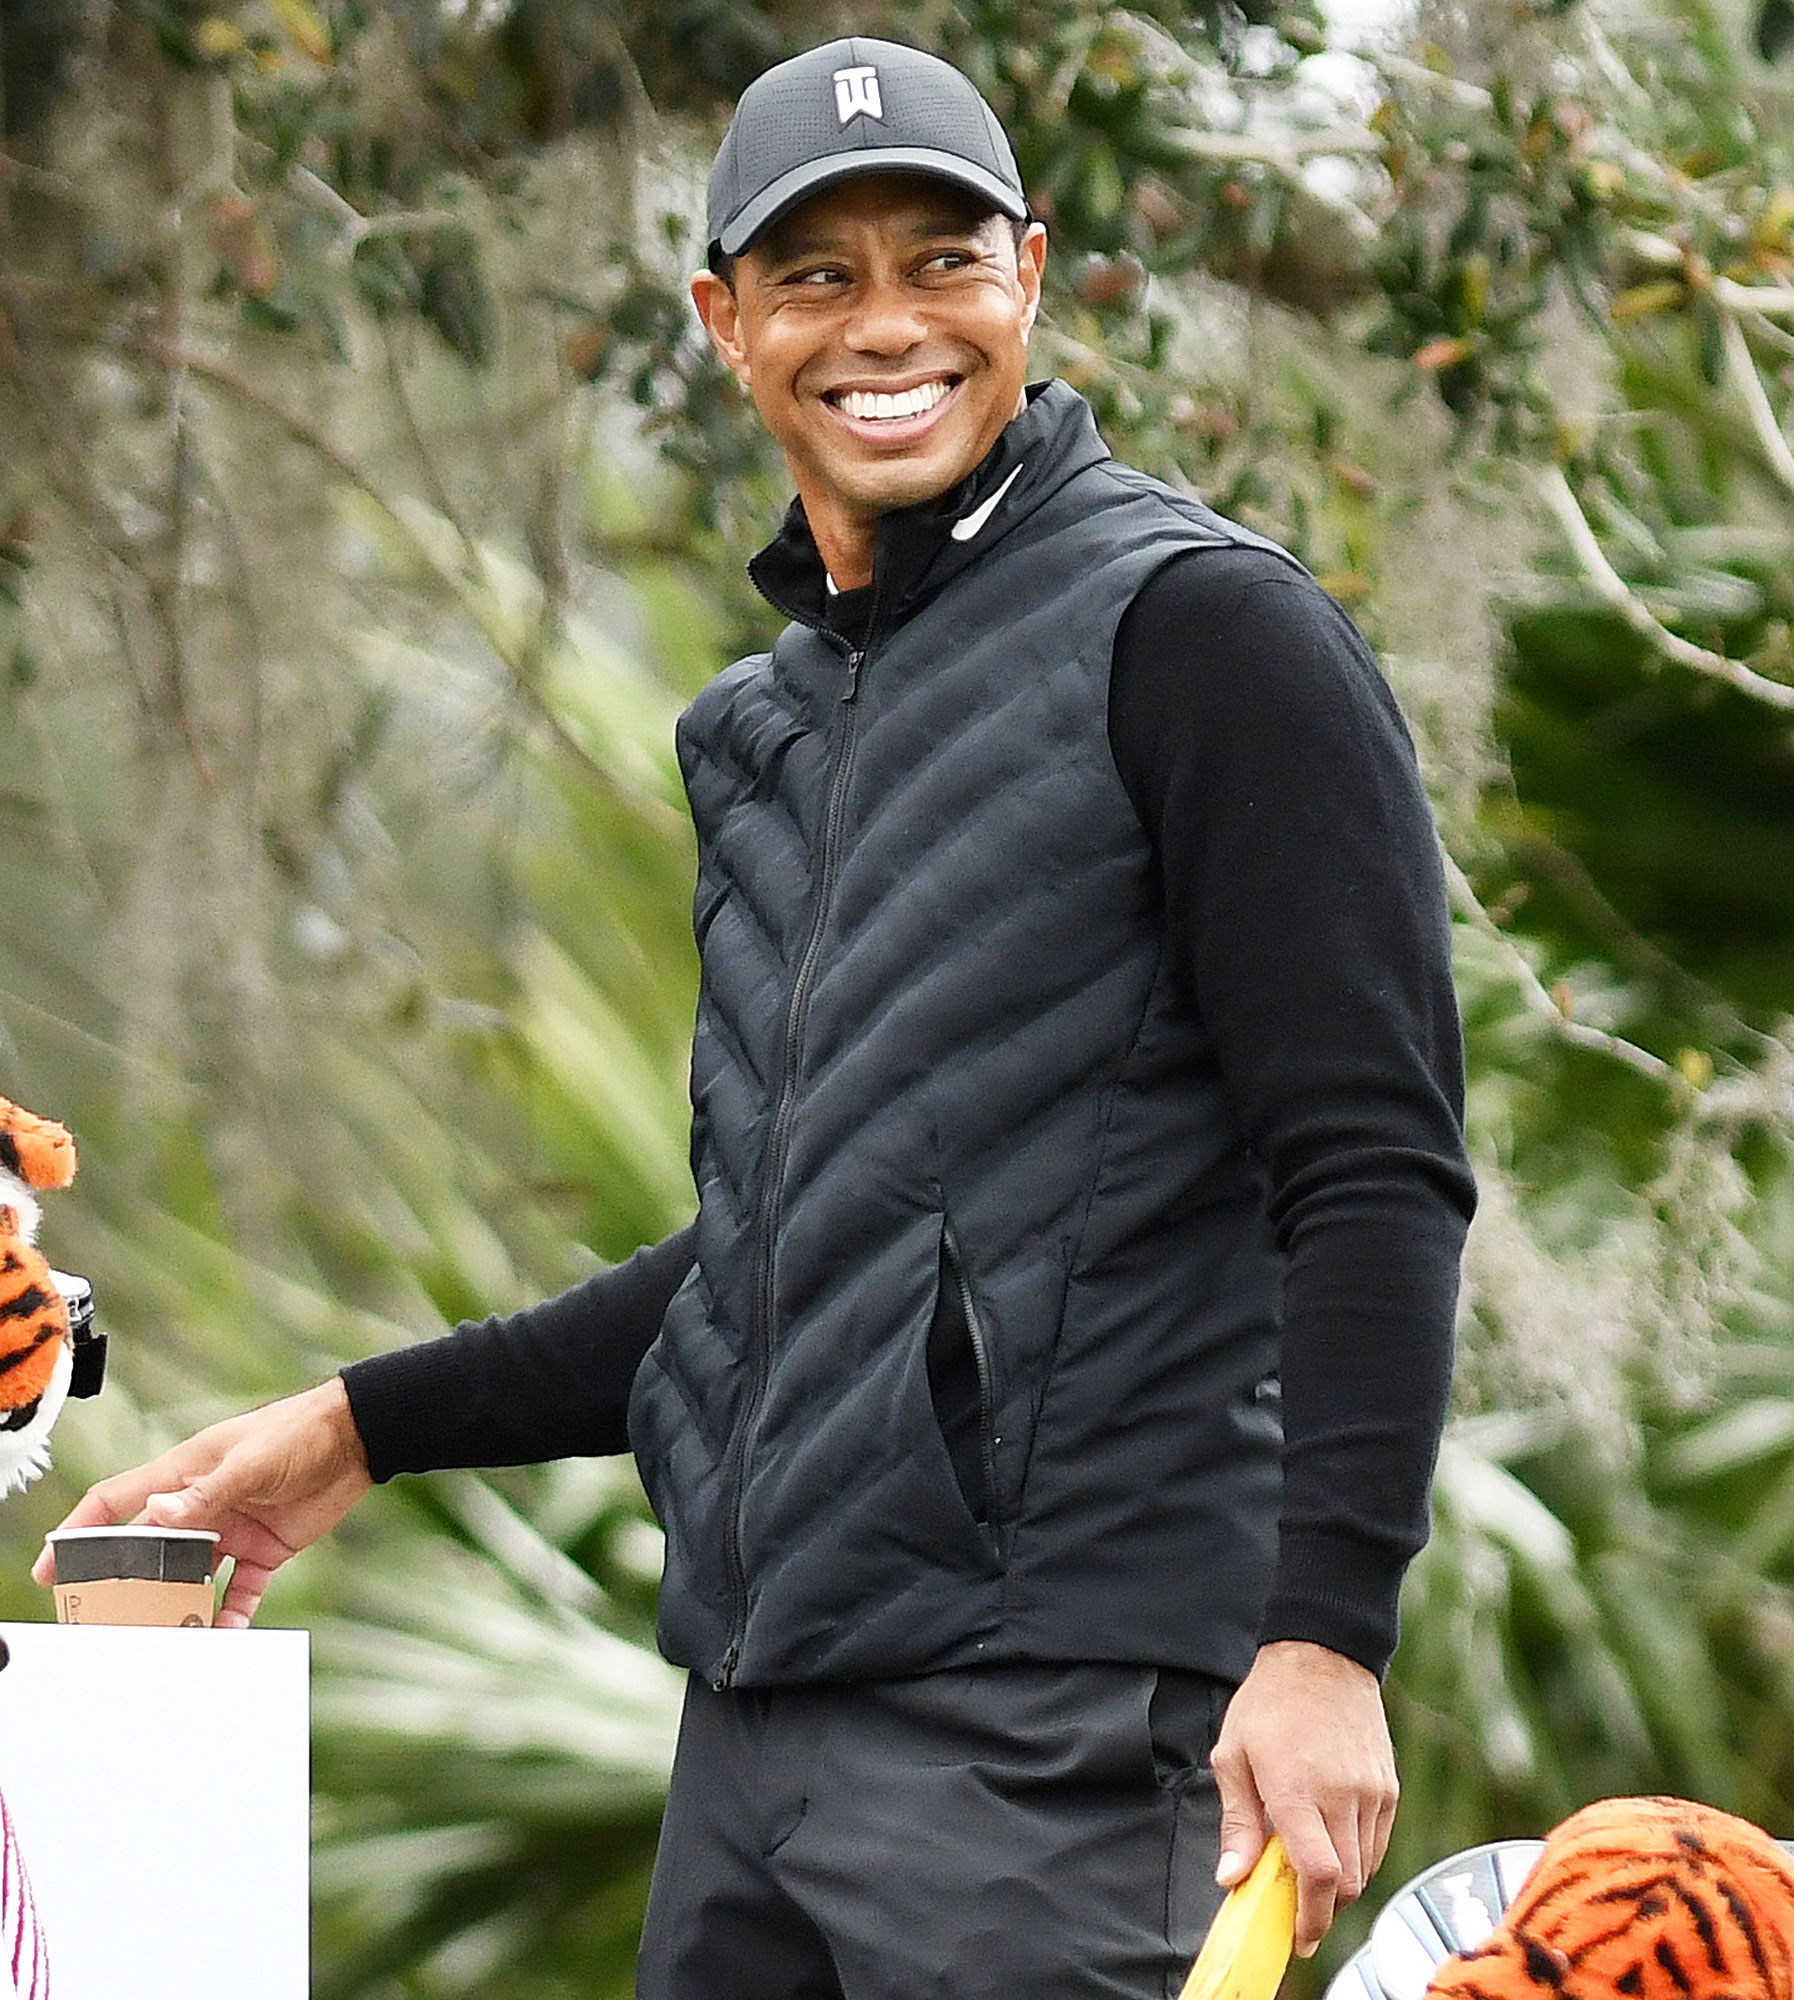 Tiger Woods Thanks Fans Amid 'Tough Time' in 1st Tweet Since Car Crash